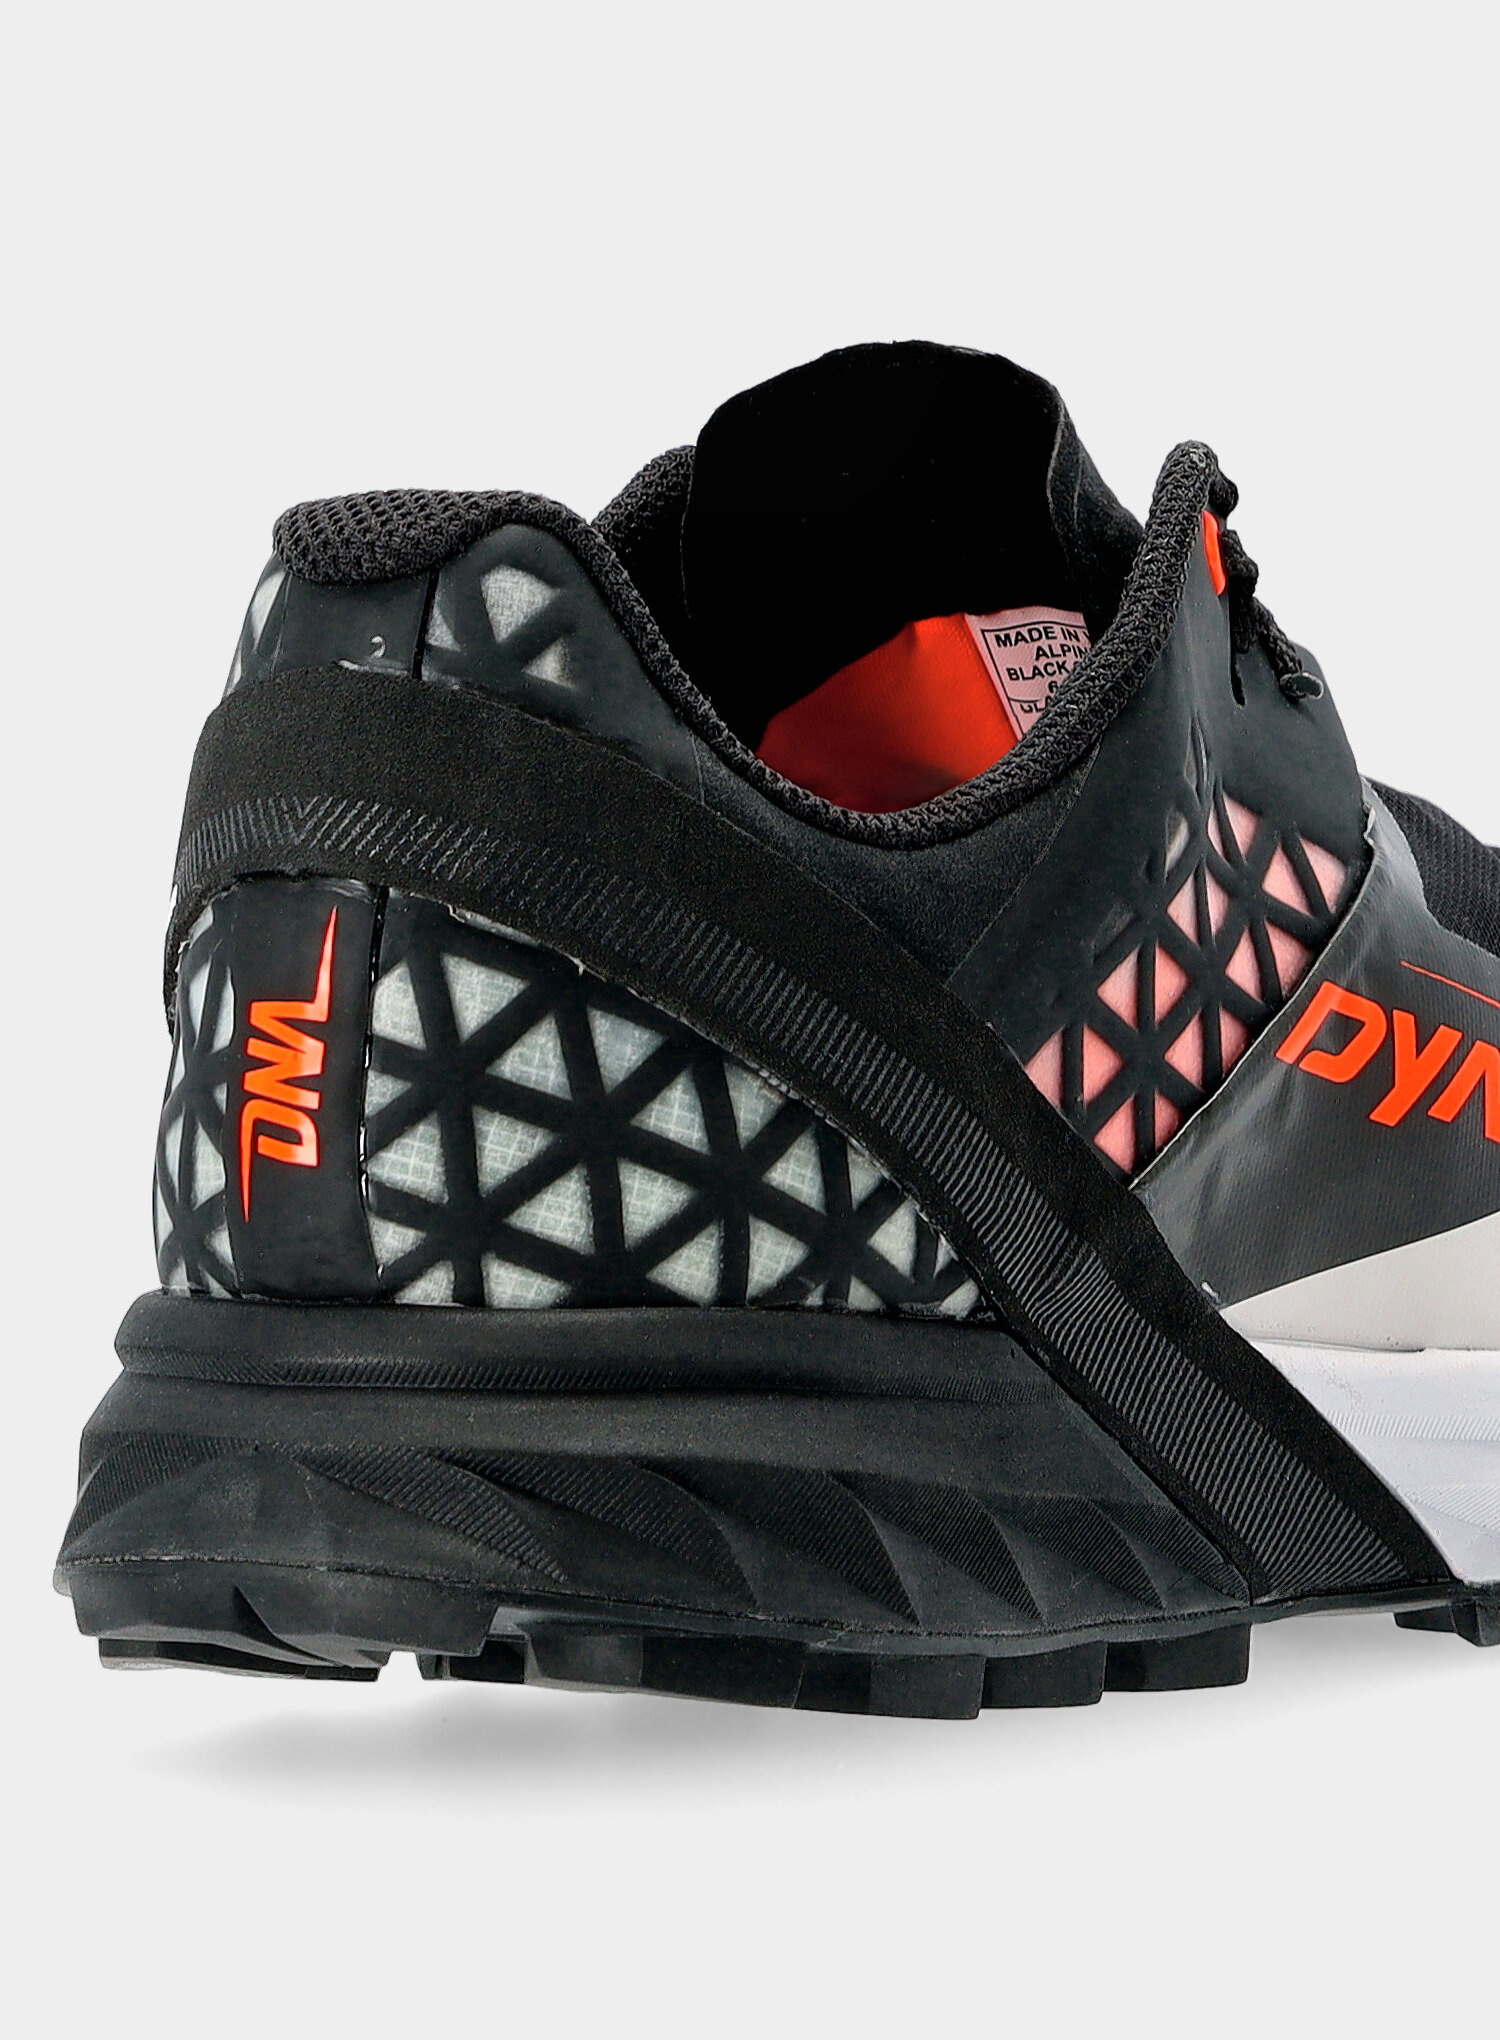 Buty trailowe Dynafit Alpine DNA - black out/orange - zdjęcie nr. 11